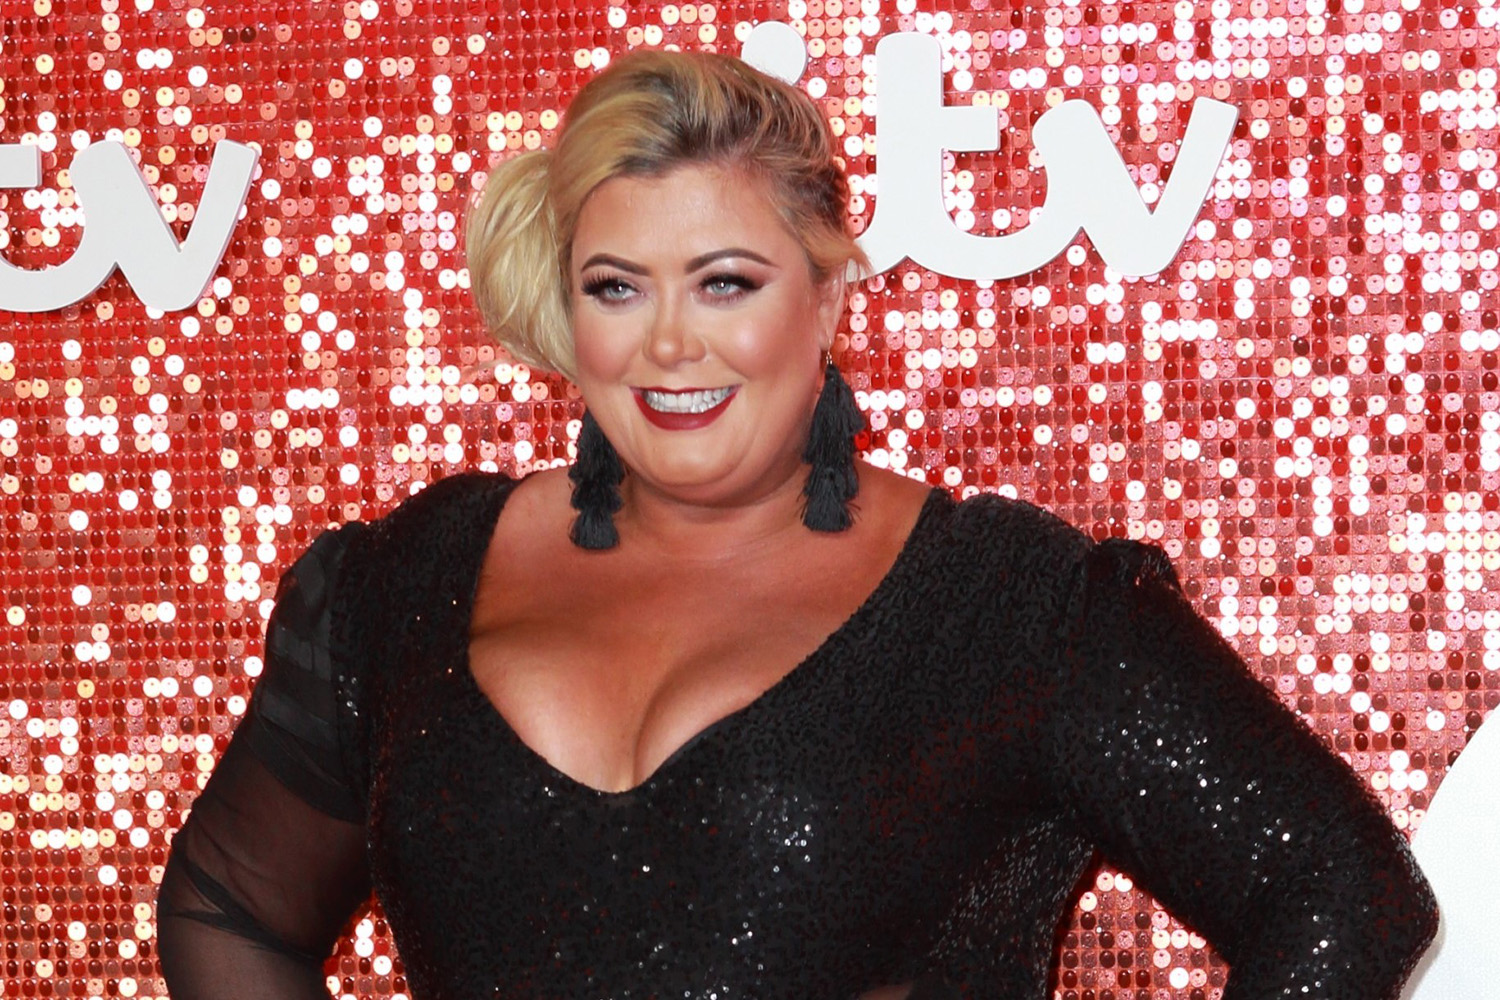 Gemma Collins launches bright pink masks with her face on them